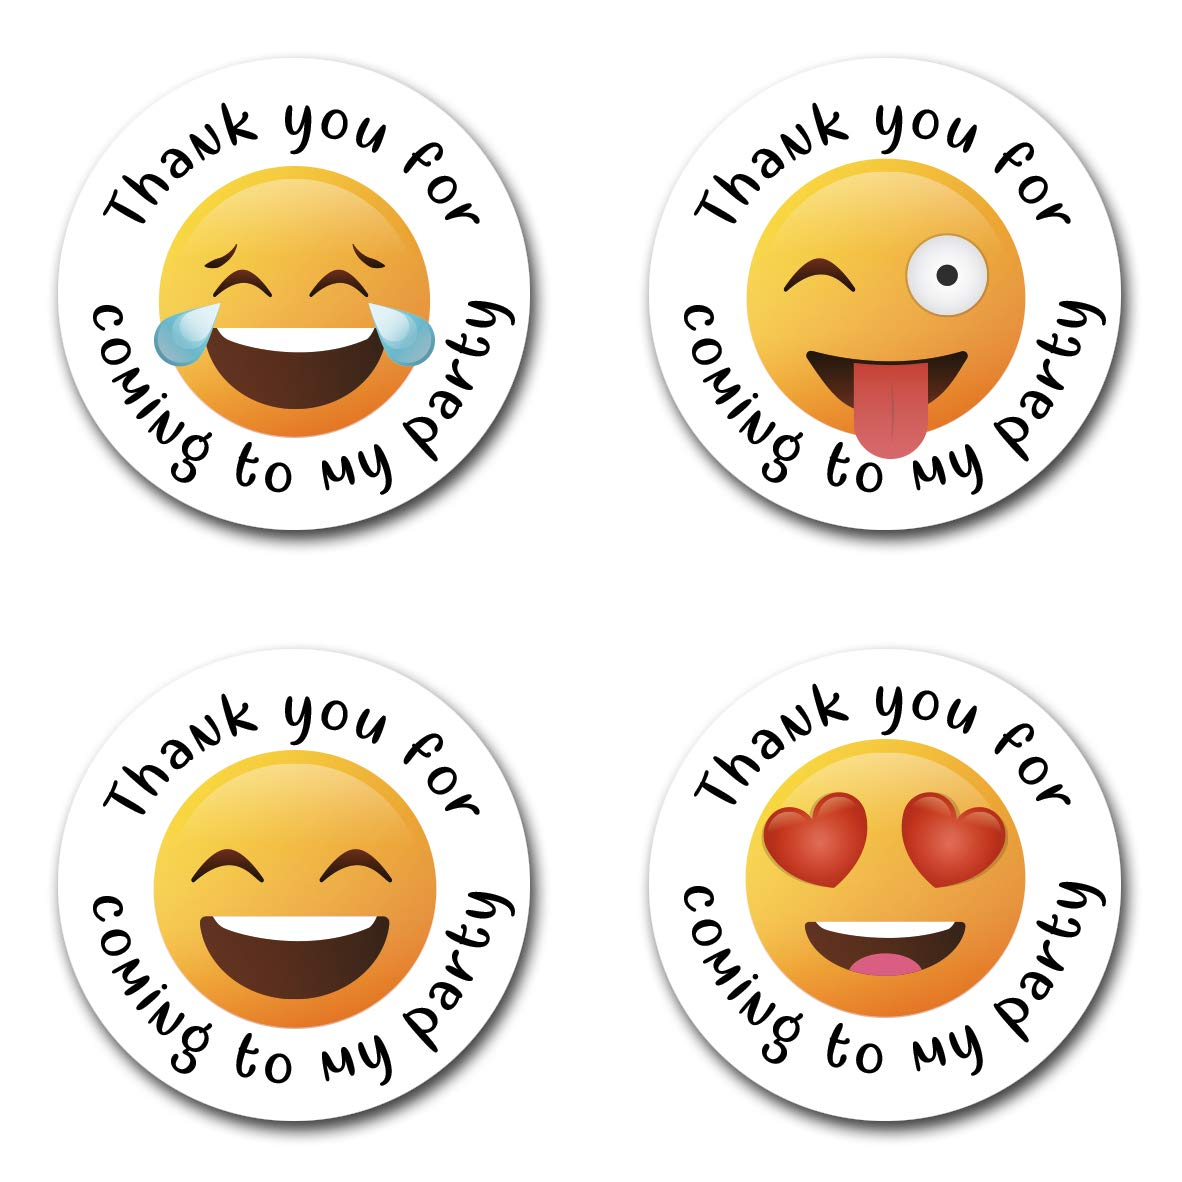 40mm Emoji *Thank You For Coming To My Party* Round Stickers for Party Bags /& Sweet Cones 24 x Stickers